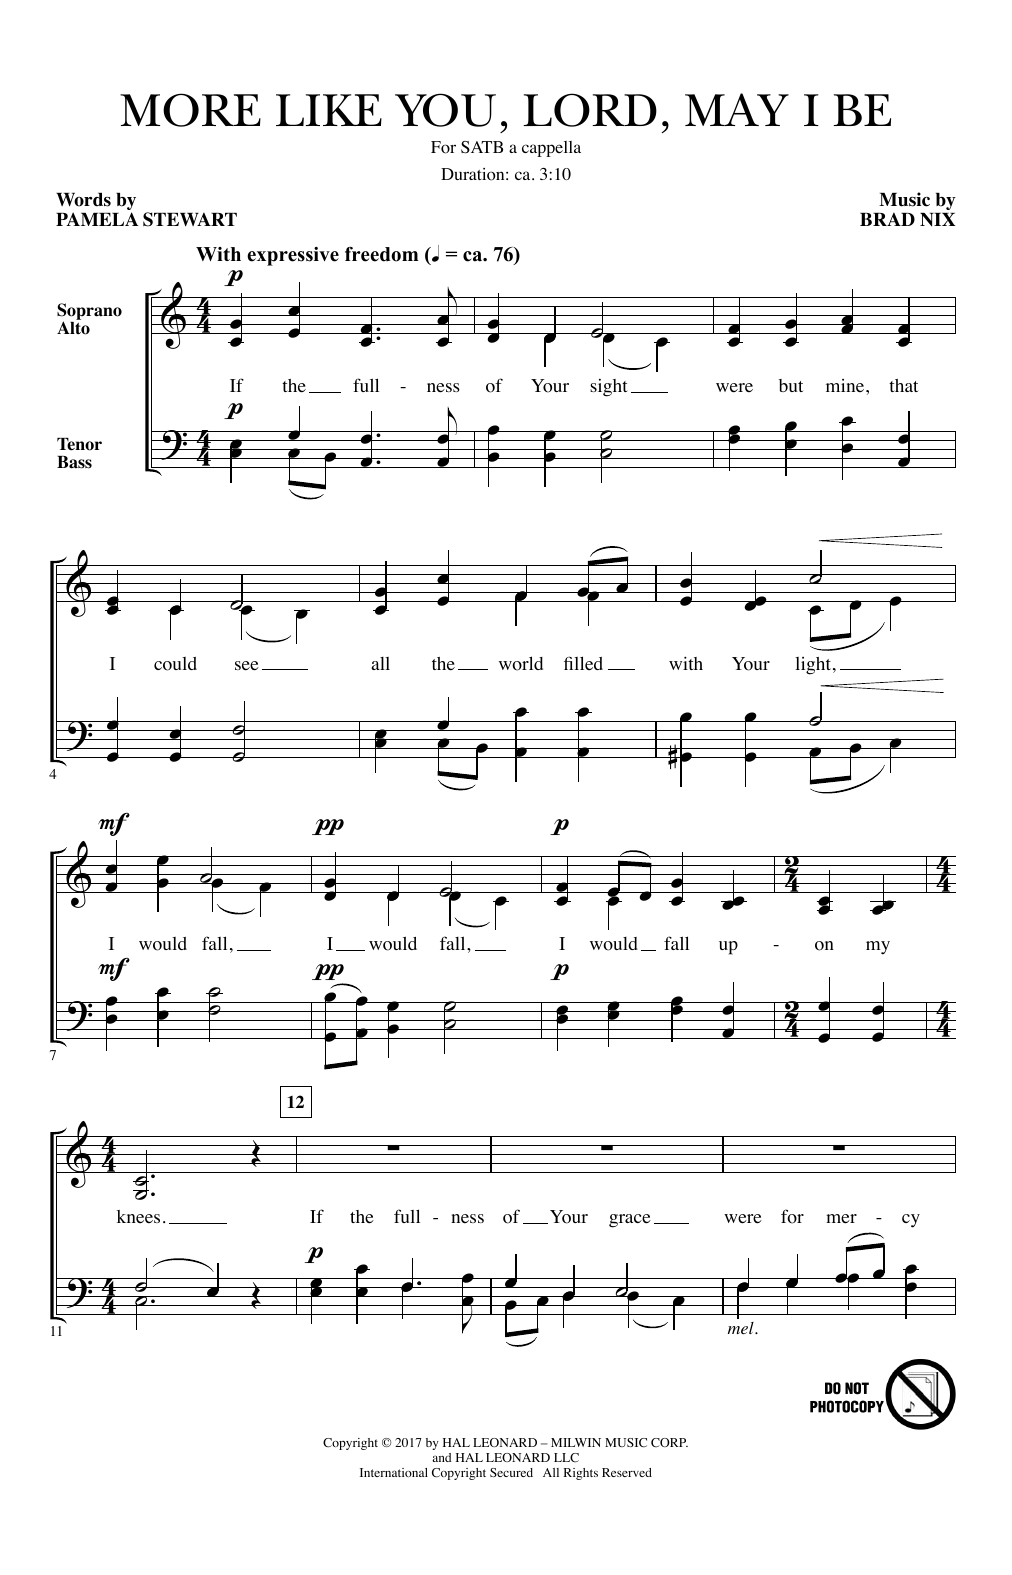 More Like You, Lord, May I Be (SATB Choir)